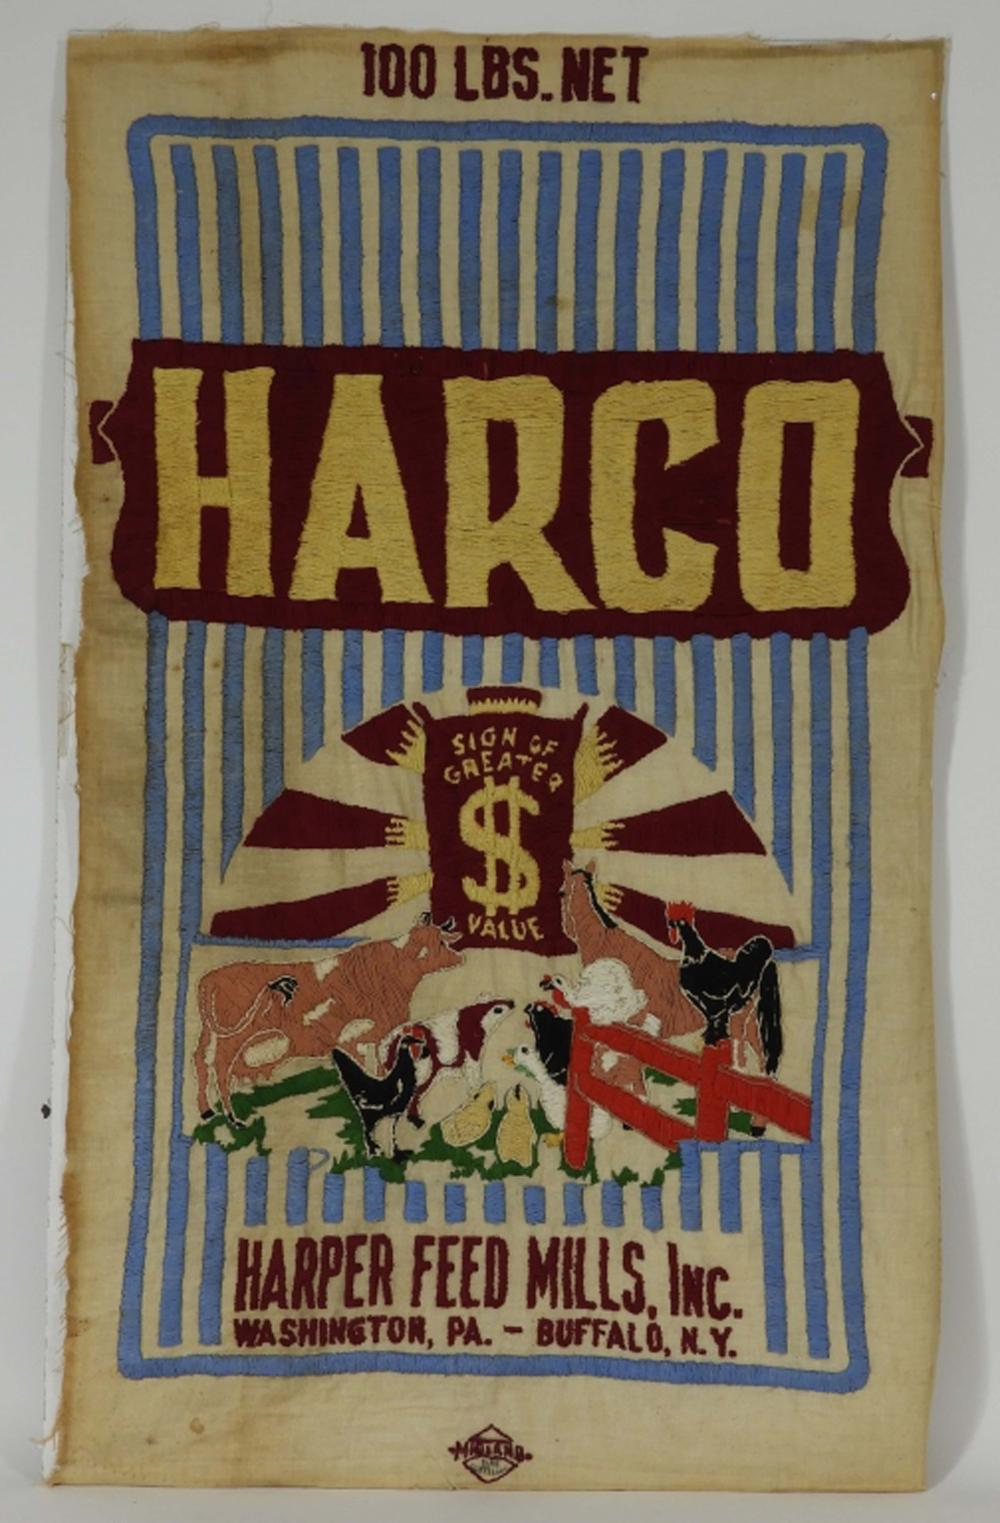 Harco Harper Feed Mills Inc. Advertising Textile